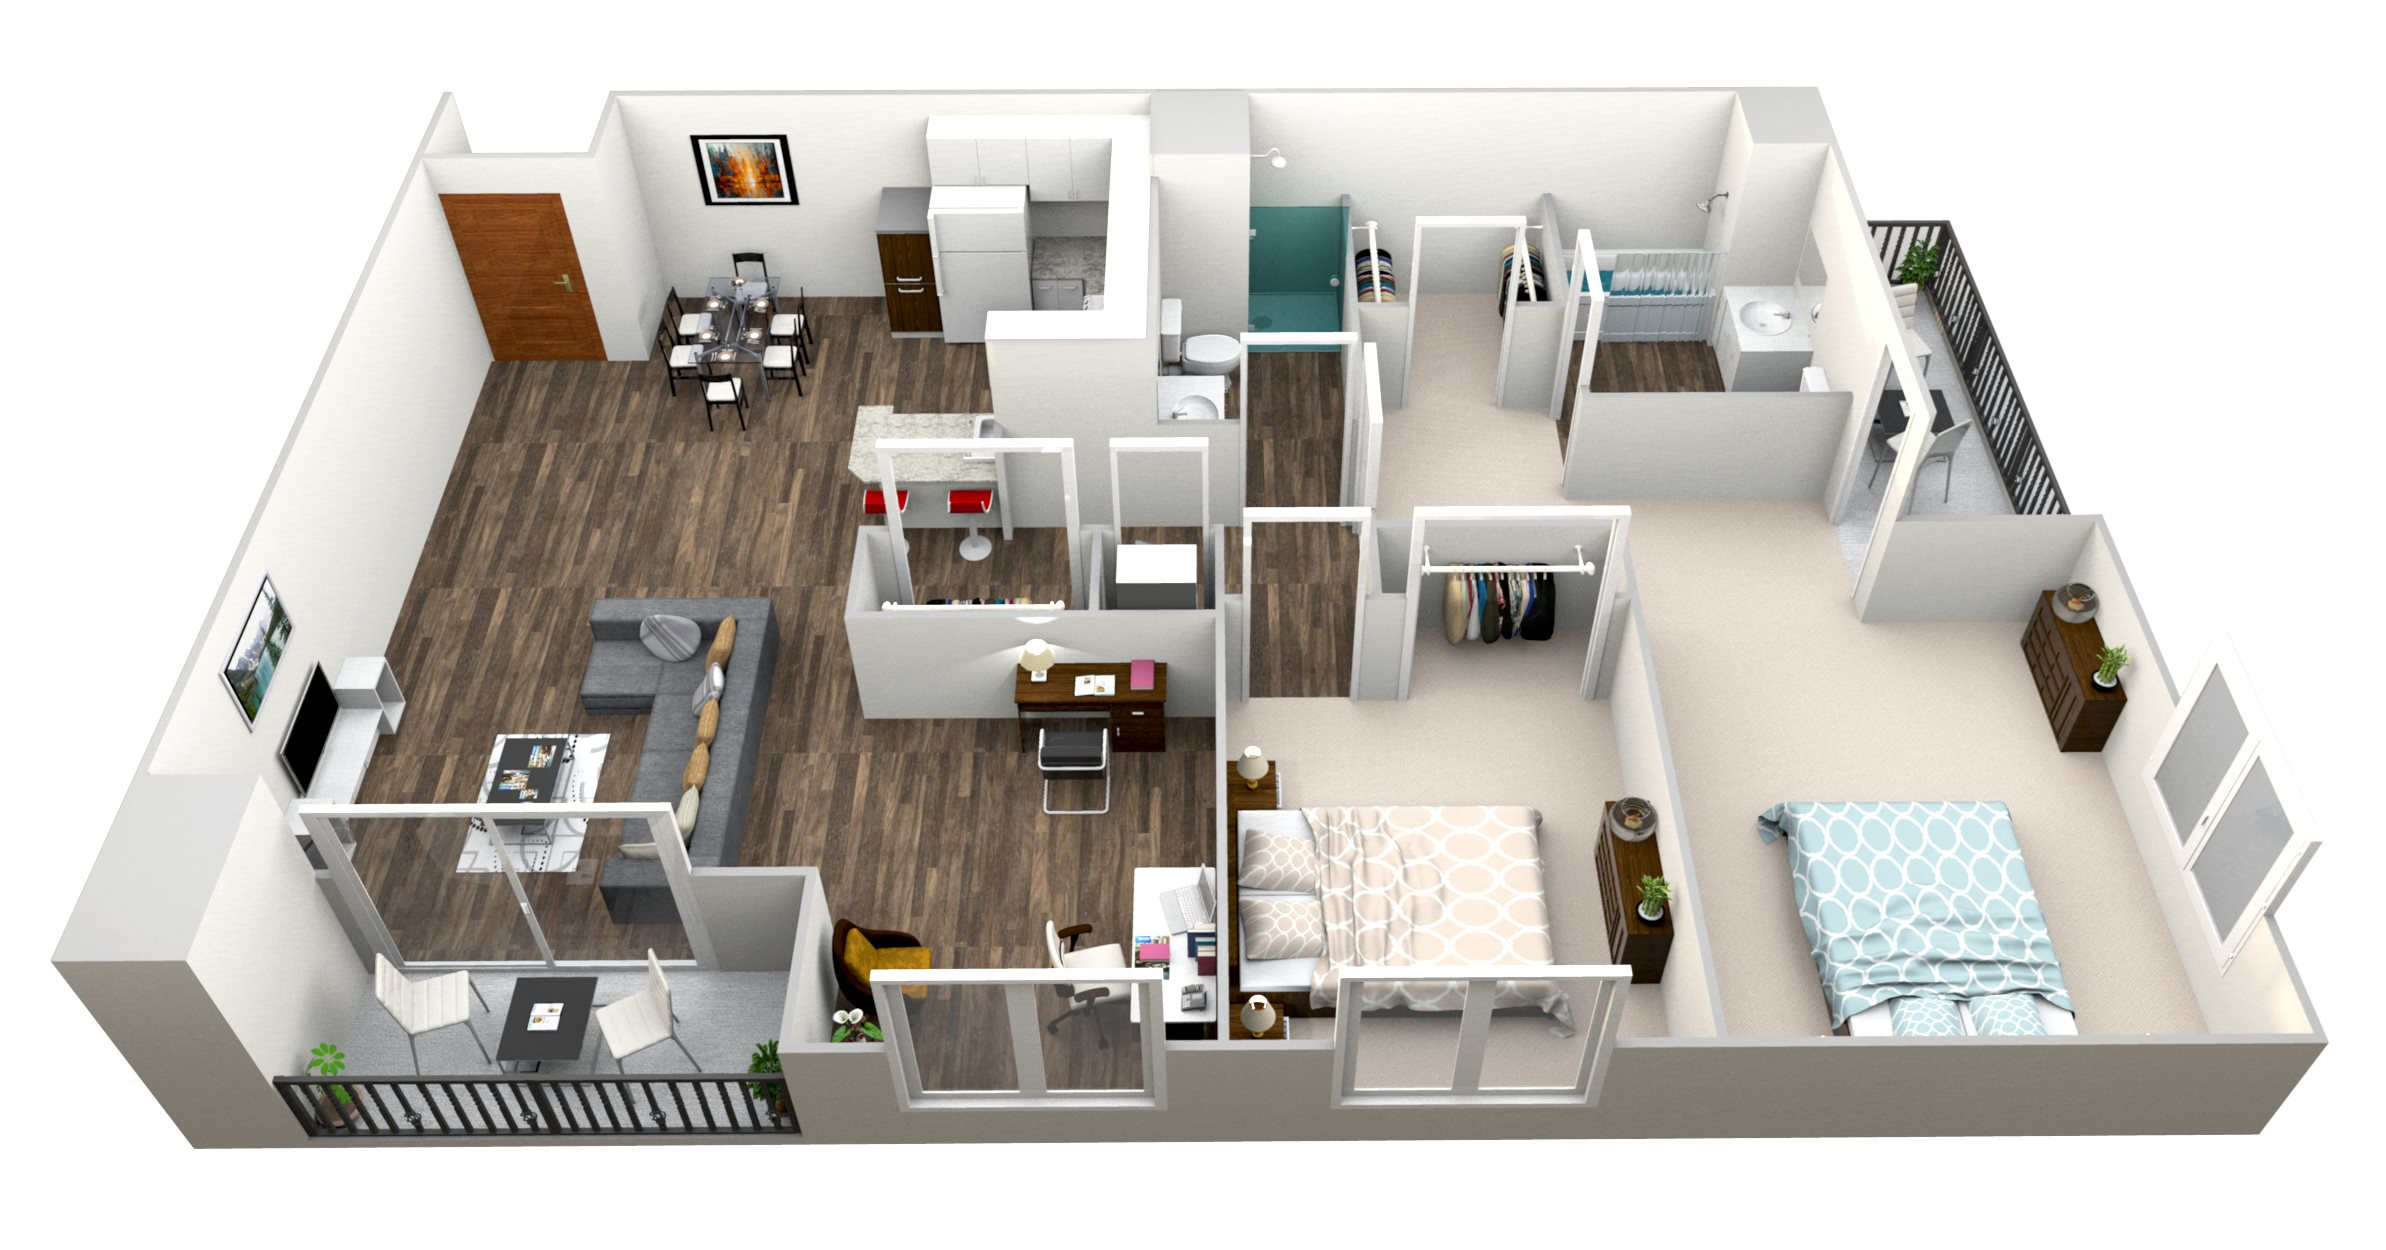 2 Bed 2 Bath I Floor Plan 9